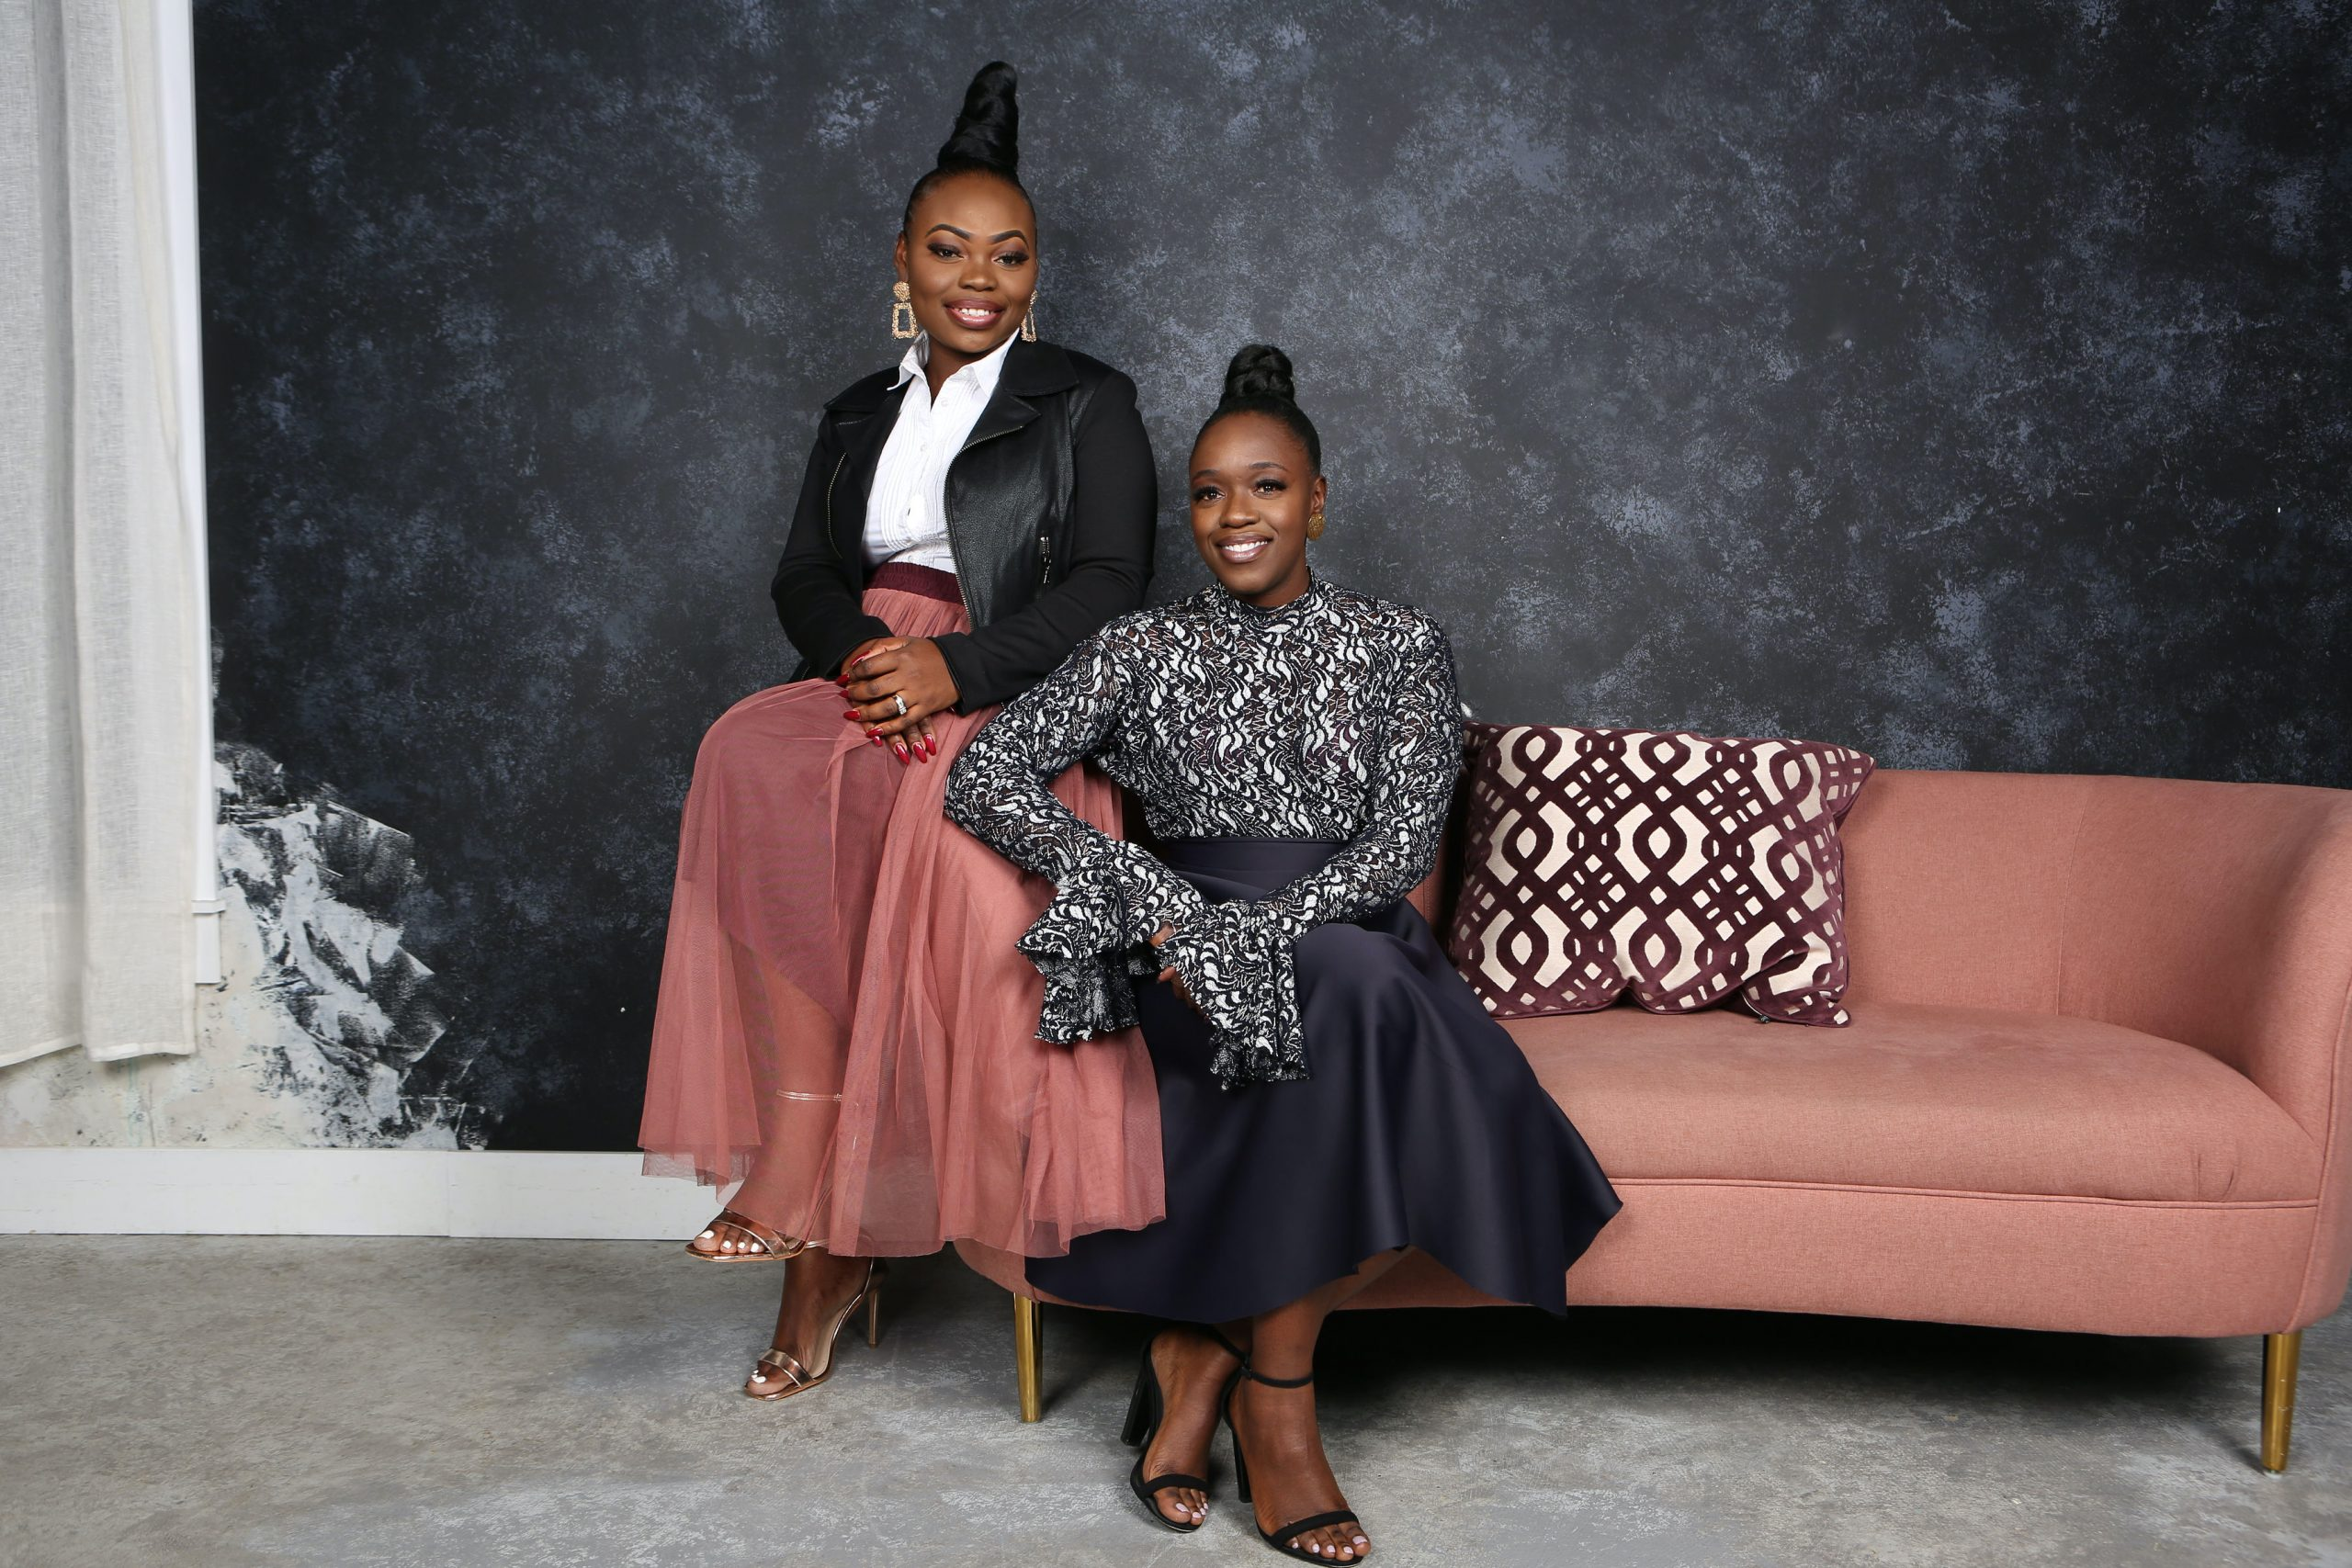 Femmebnb Inc. Co-Founders, Yaa Birago and Diana Obeng